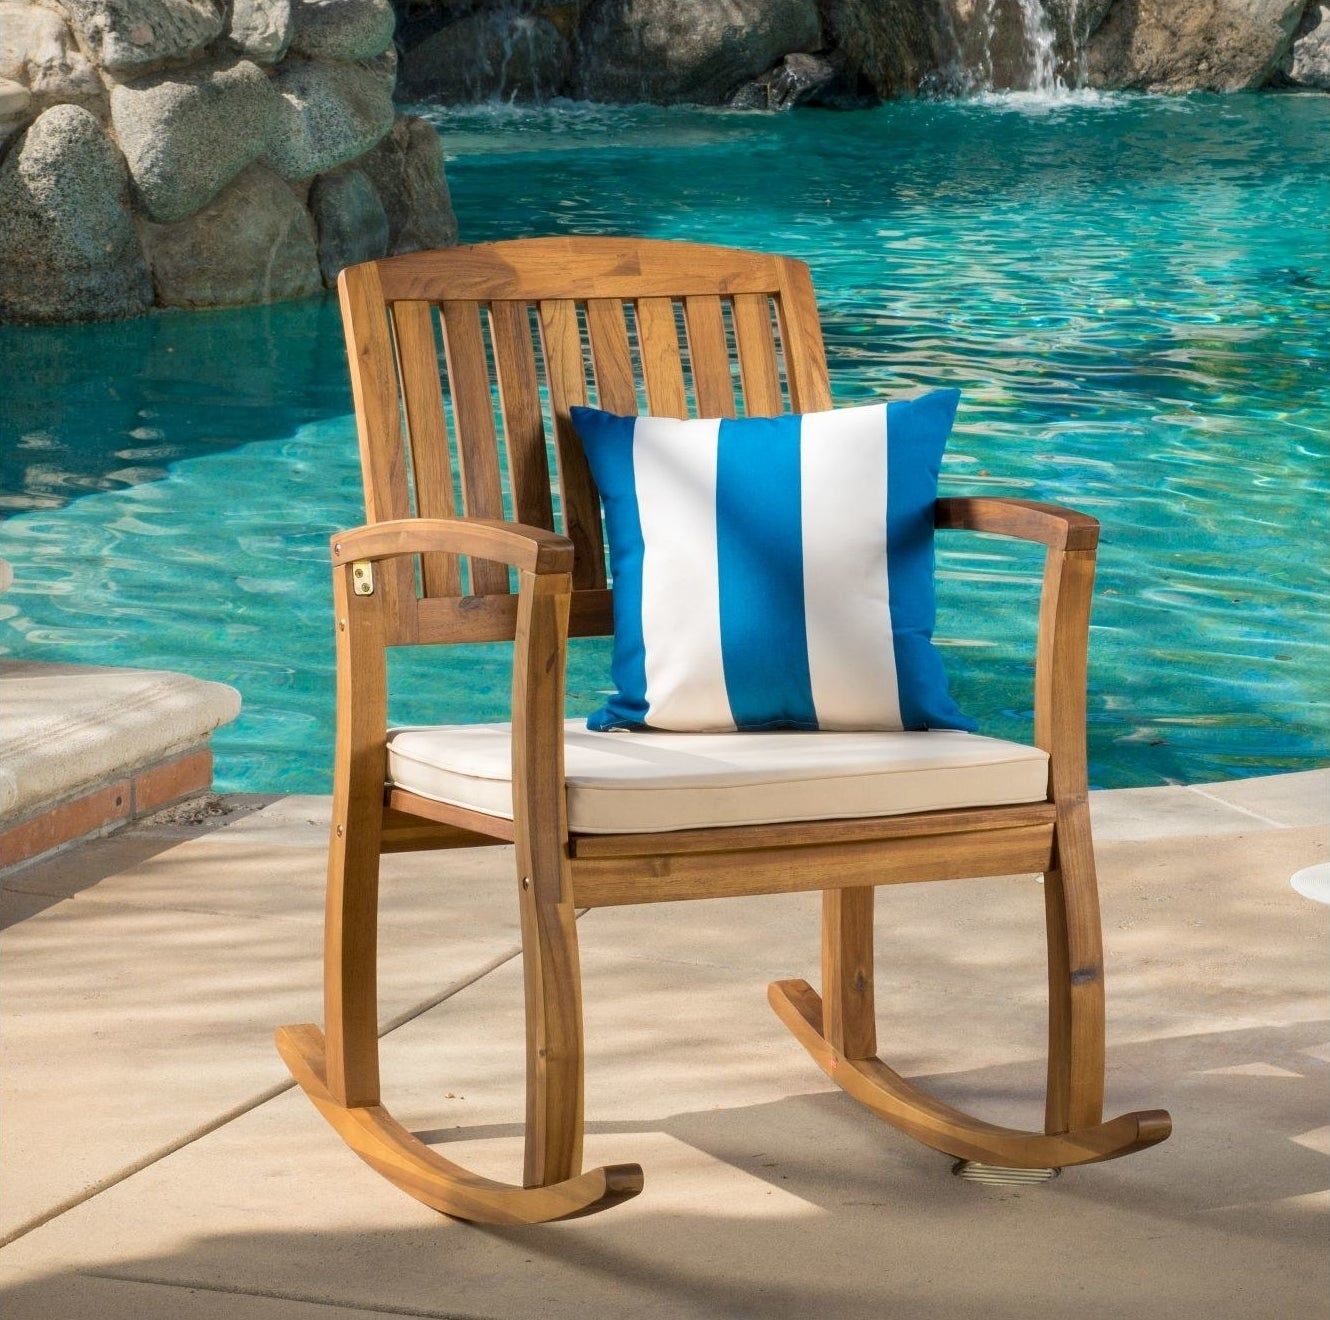 Brown rocking chair with cream cushion and blue and white pillow by an aqua pool